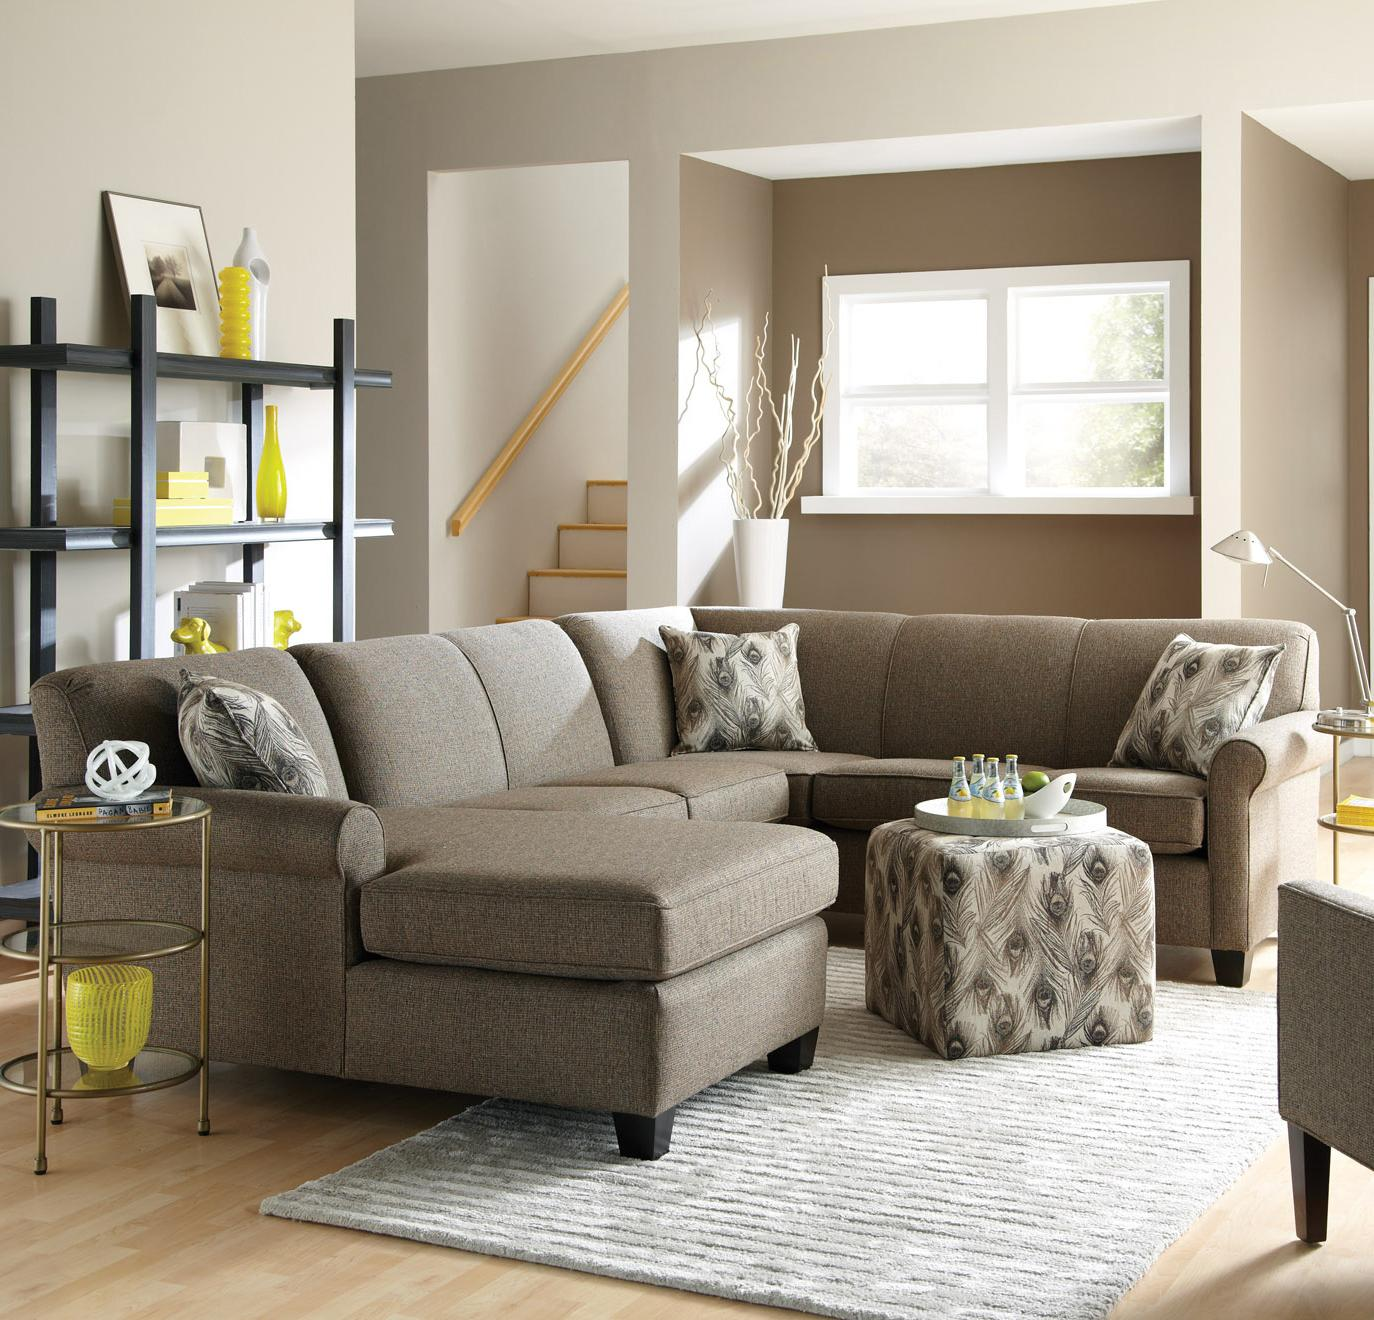 England angie long sectional sofa with chaise furniture for England furniture sectional sofa